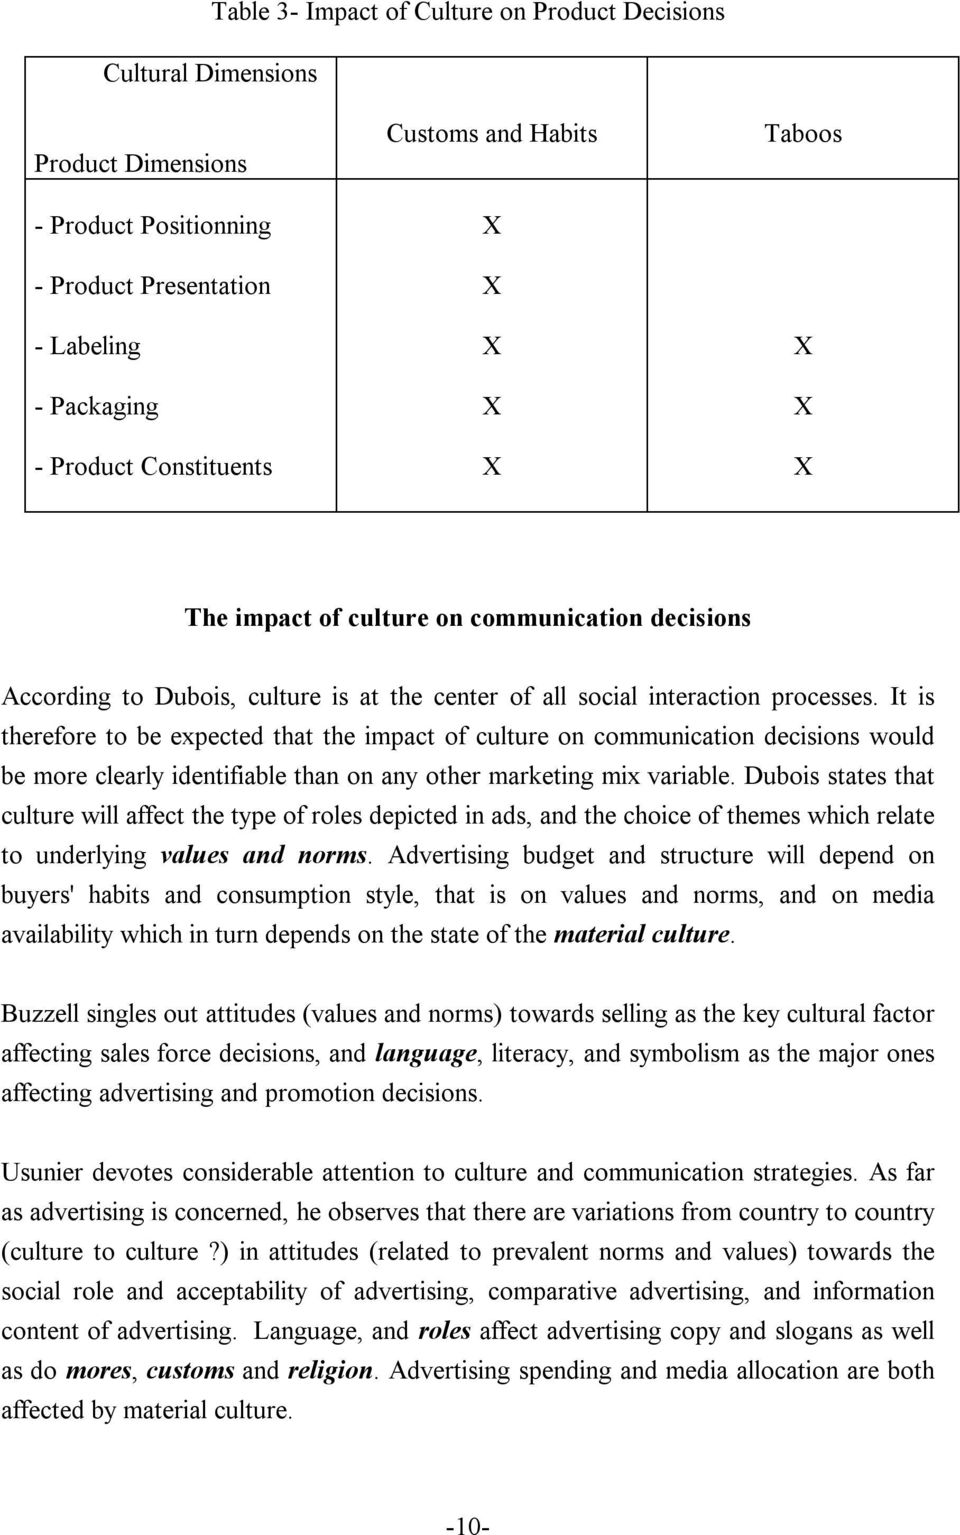 It is therefore to be expected that the impact of culture on communication decisions would be more clearly identifiable than on any other marketing mix variable.